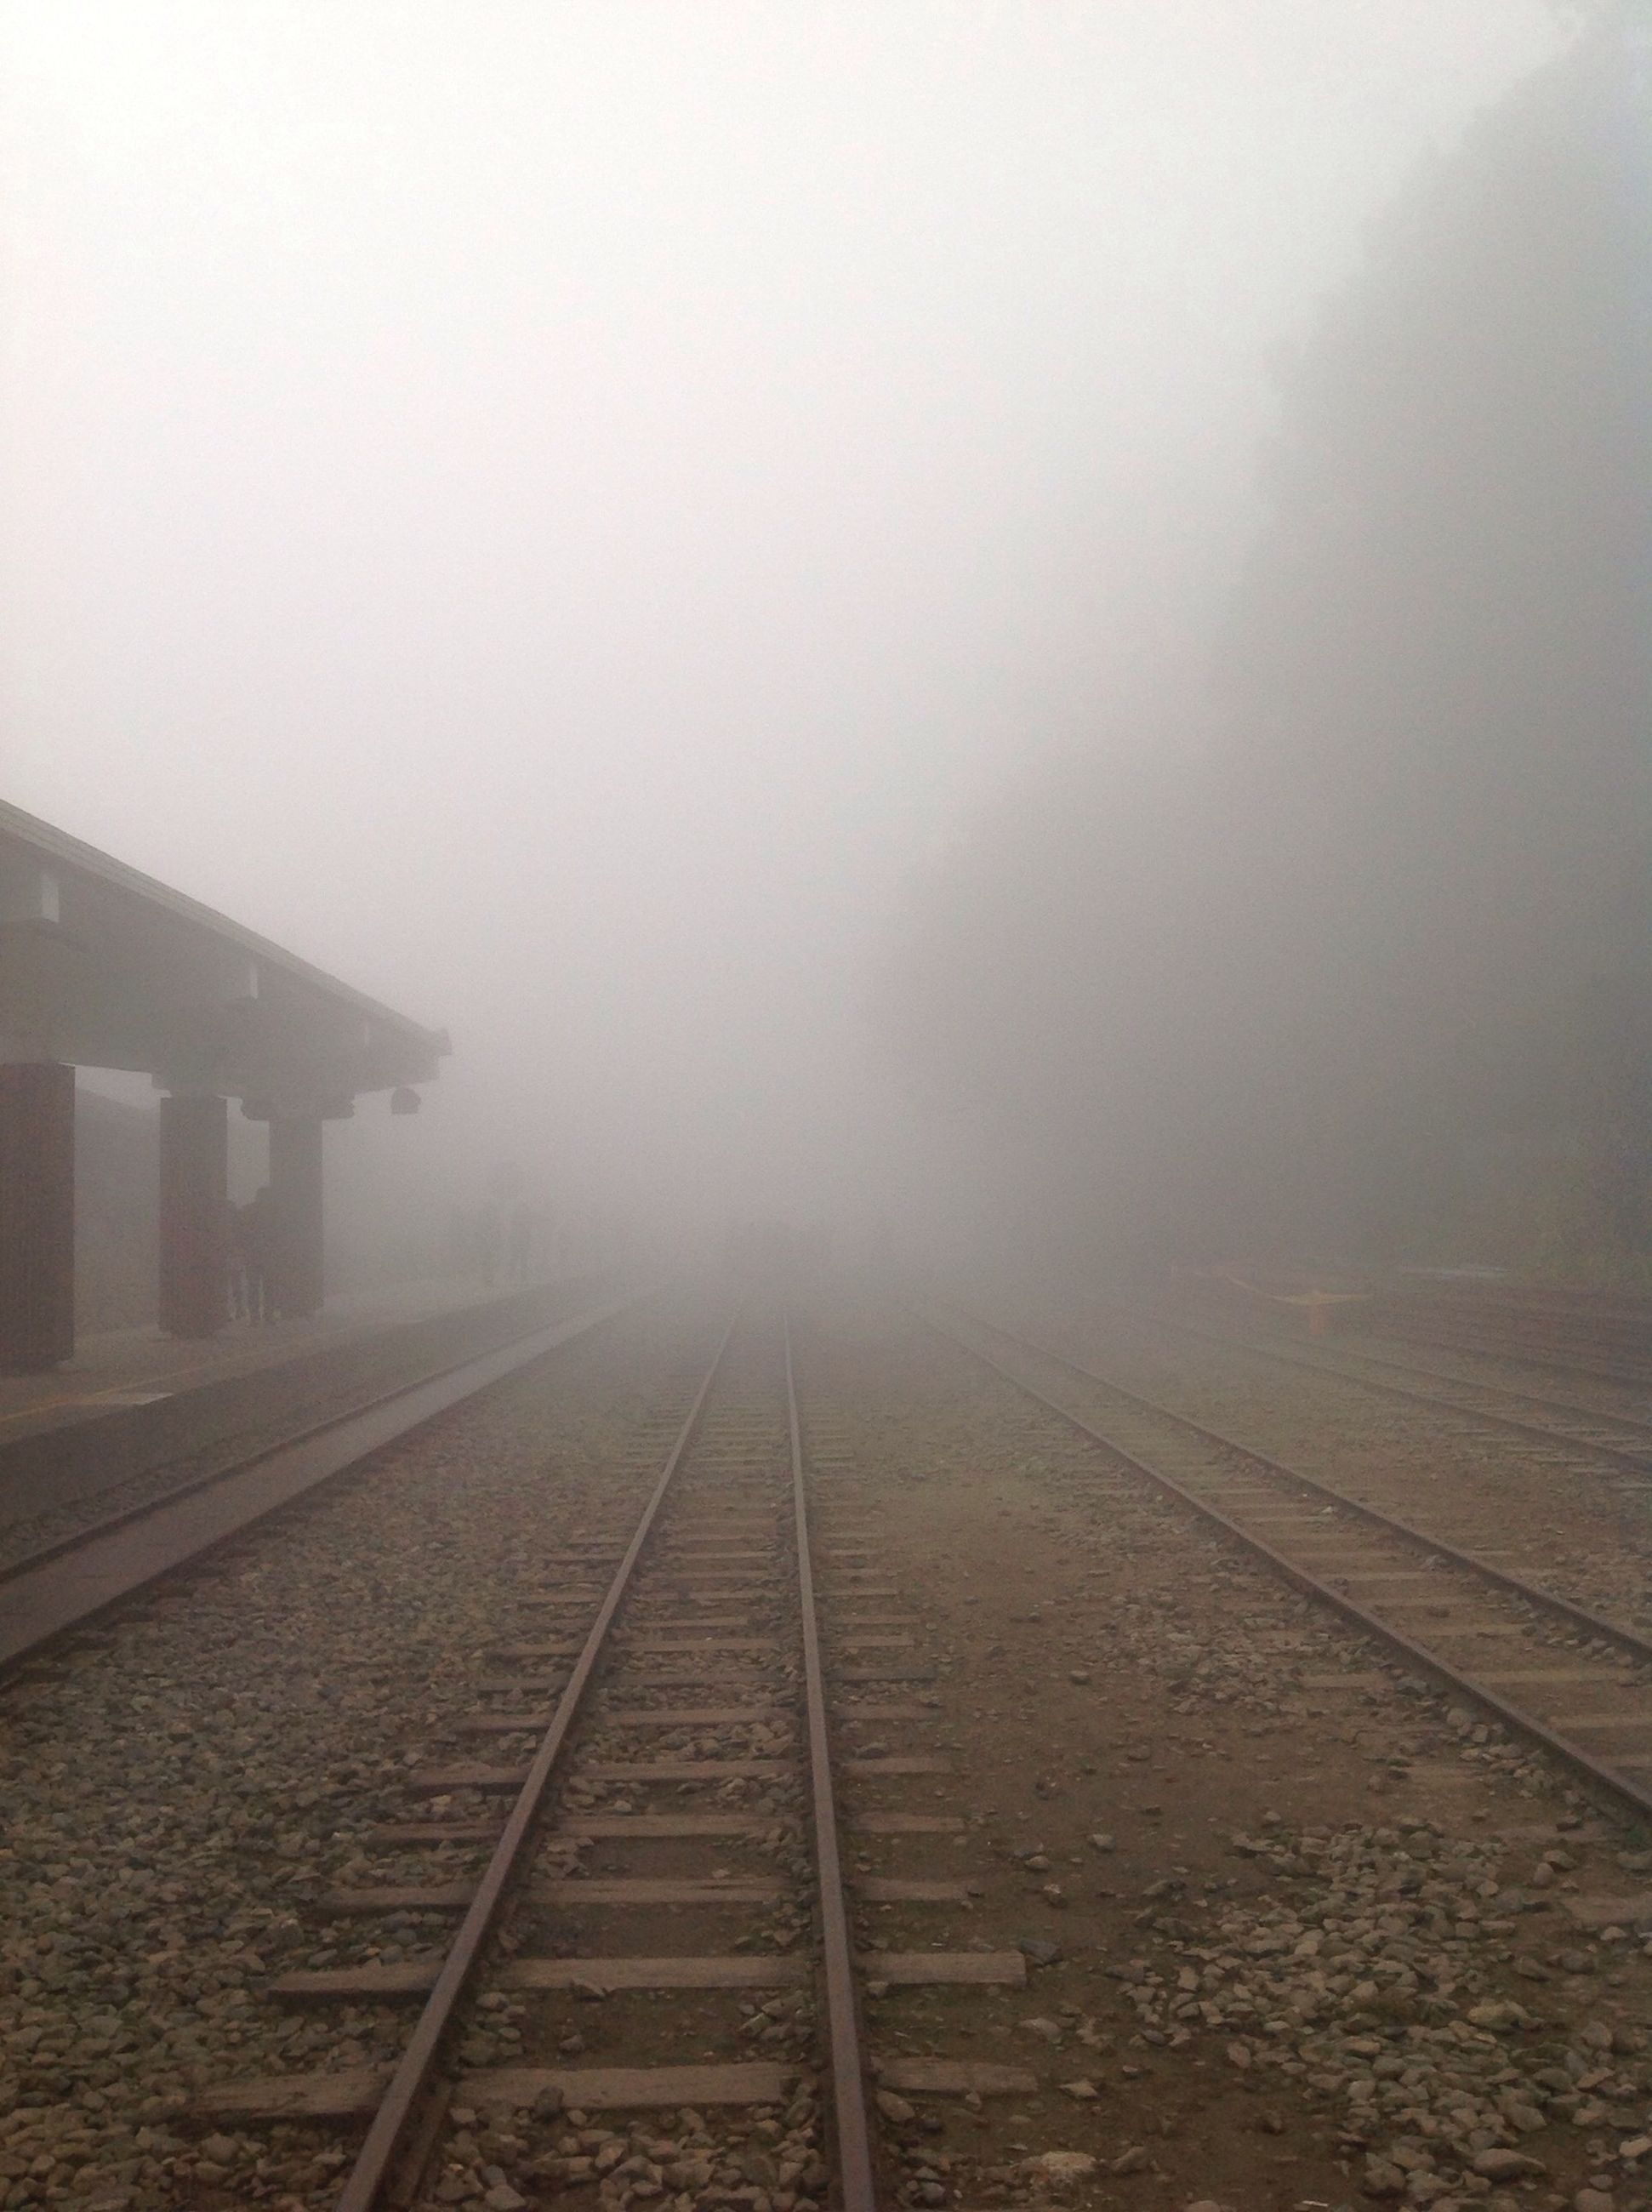 fog, foggy, weather, the way forward, railroad track, rail transportation, transportation, diminishing perspective, vanishing point, built structure, sky, copy space, architecture, day, no people, outdoors, tranquility, overcast, mist